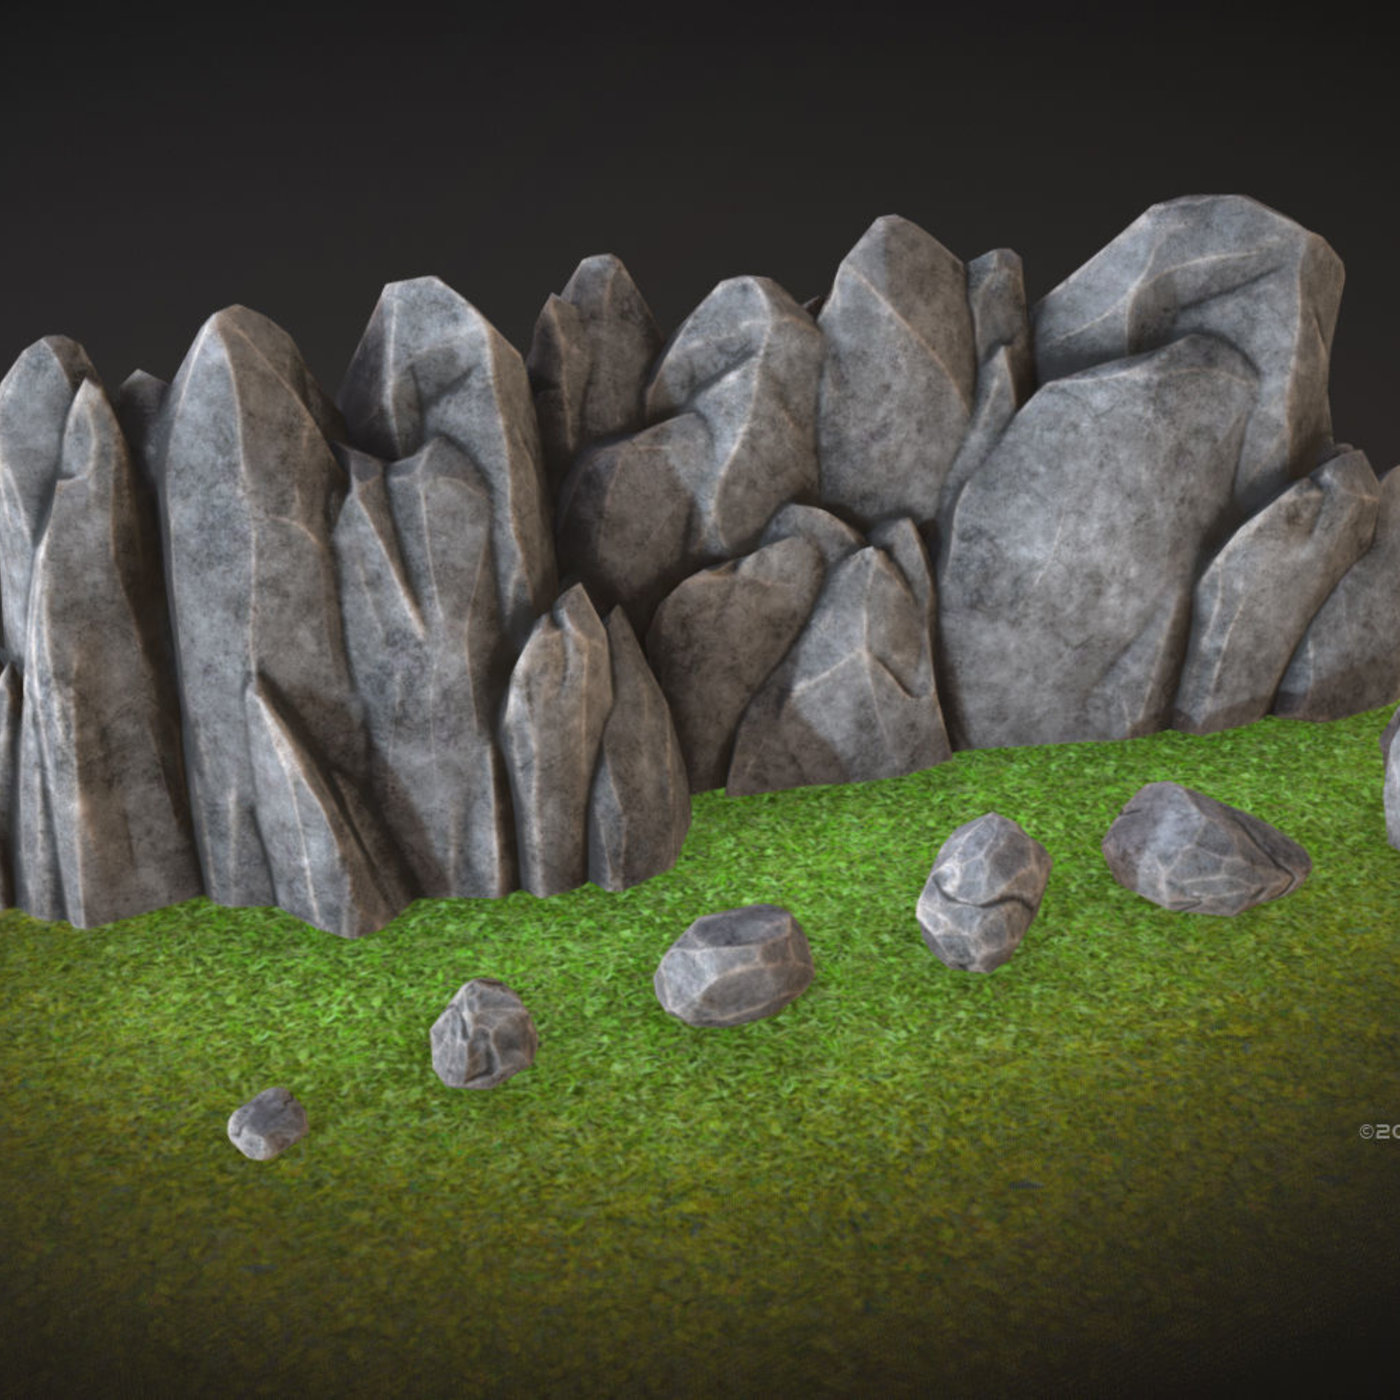 Stylized rock formations